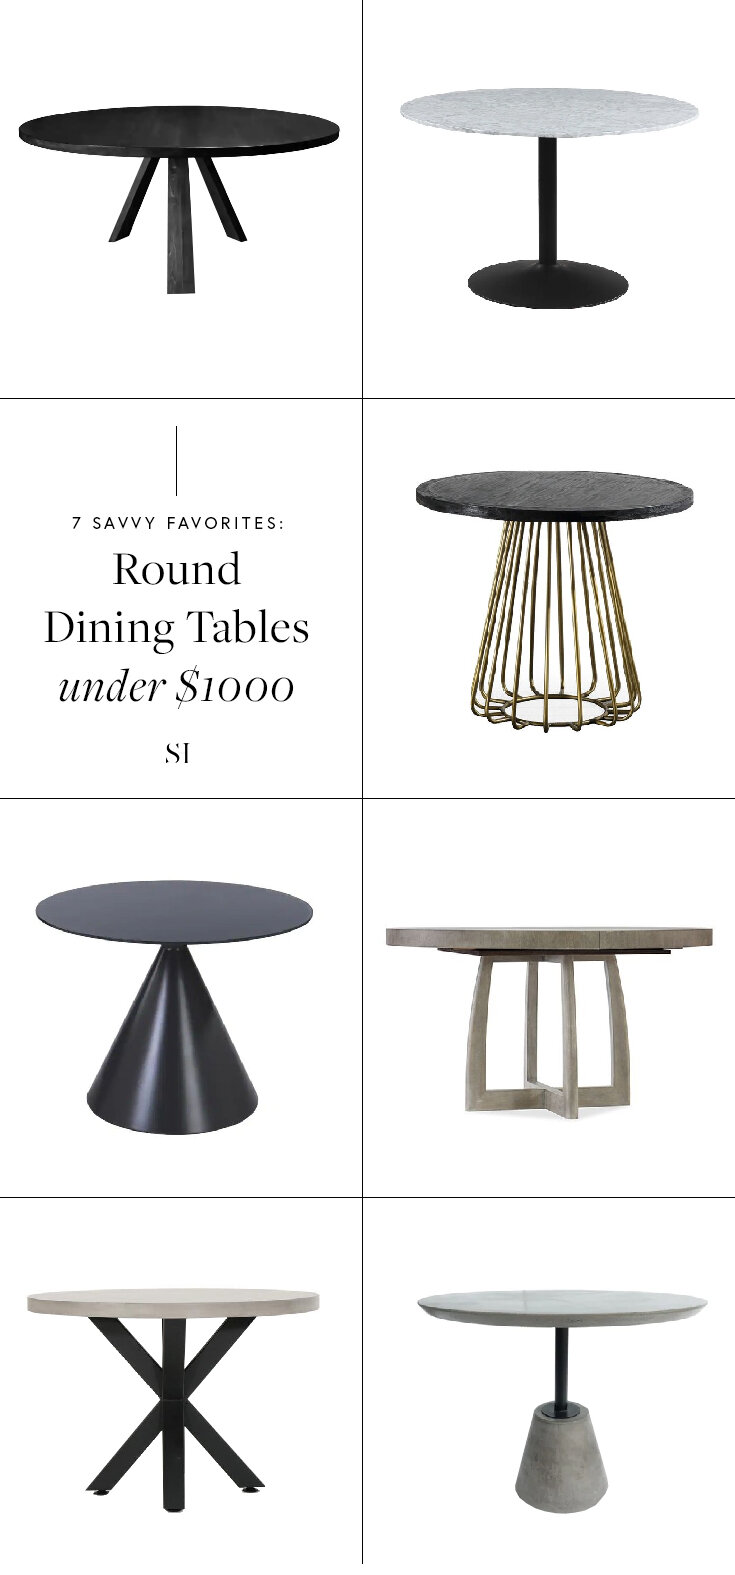 7-top-rated-modern-and-contemporary-round-dining-tables-under-$1000-by-the-savvy-heart-interior-studio-and-blog.jpg